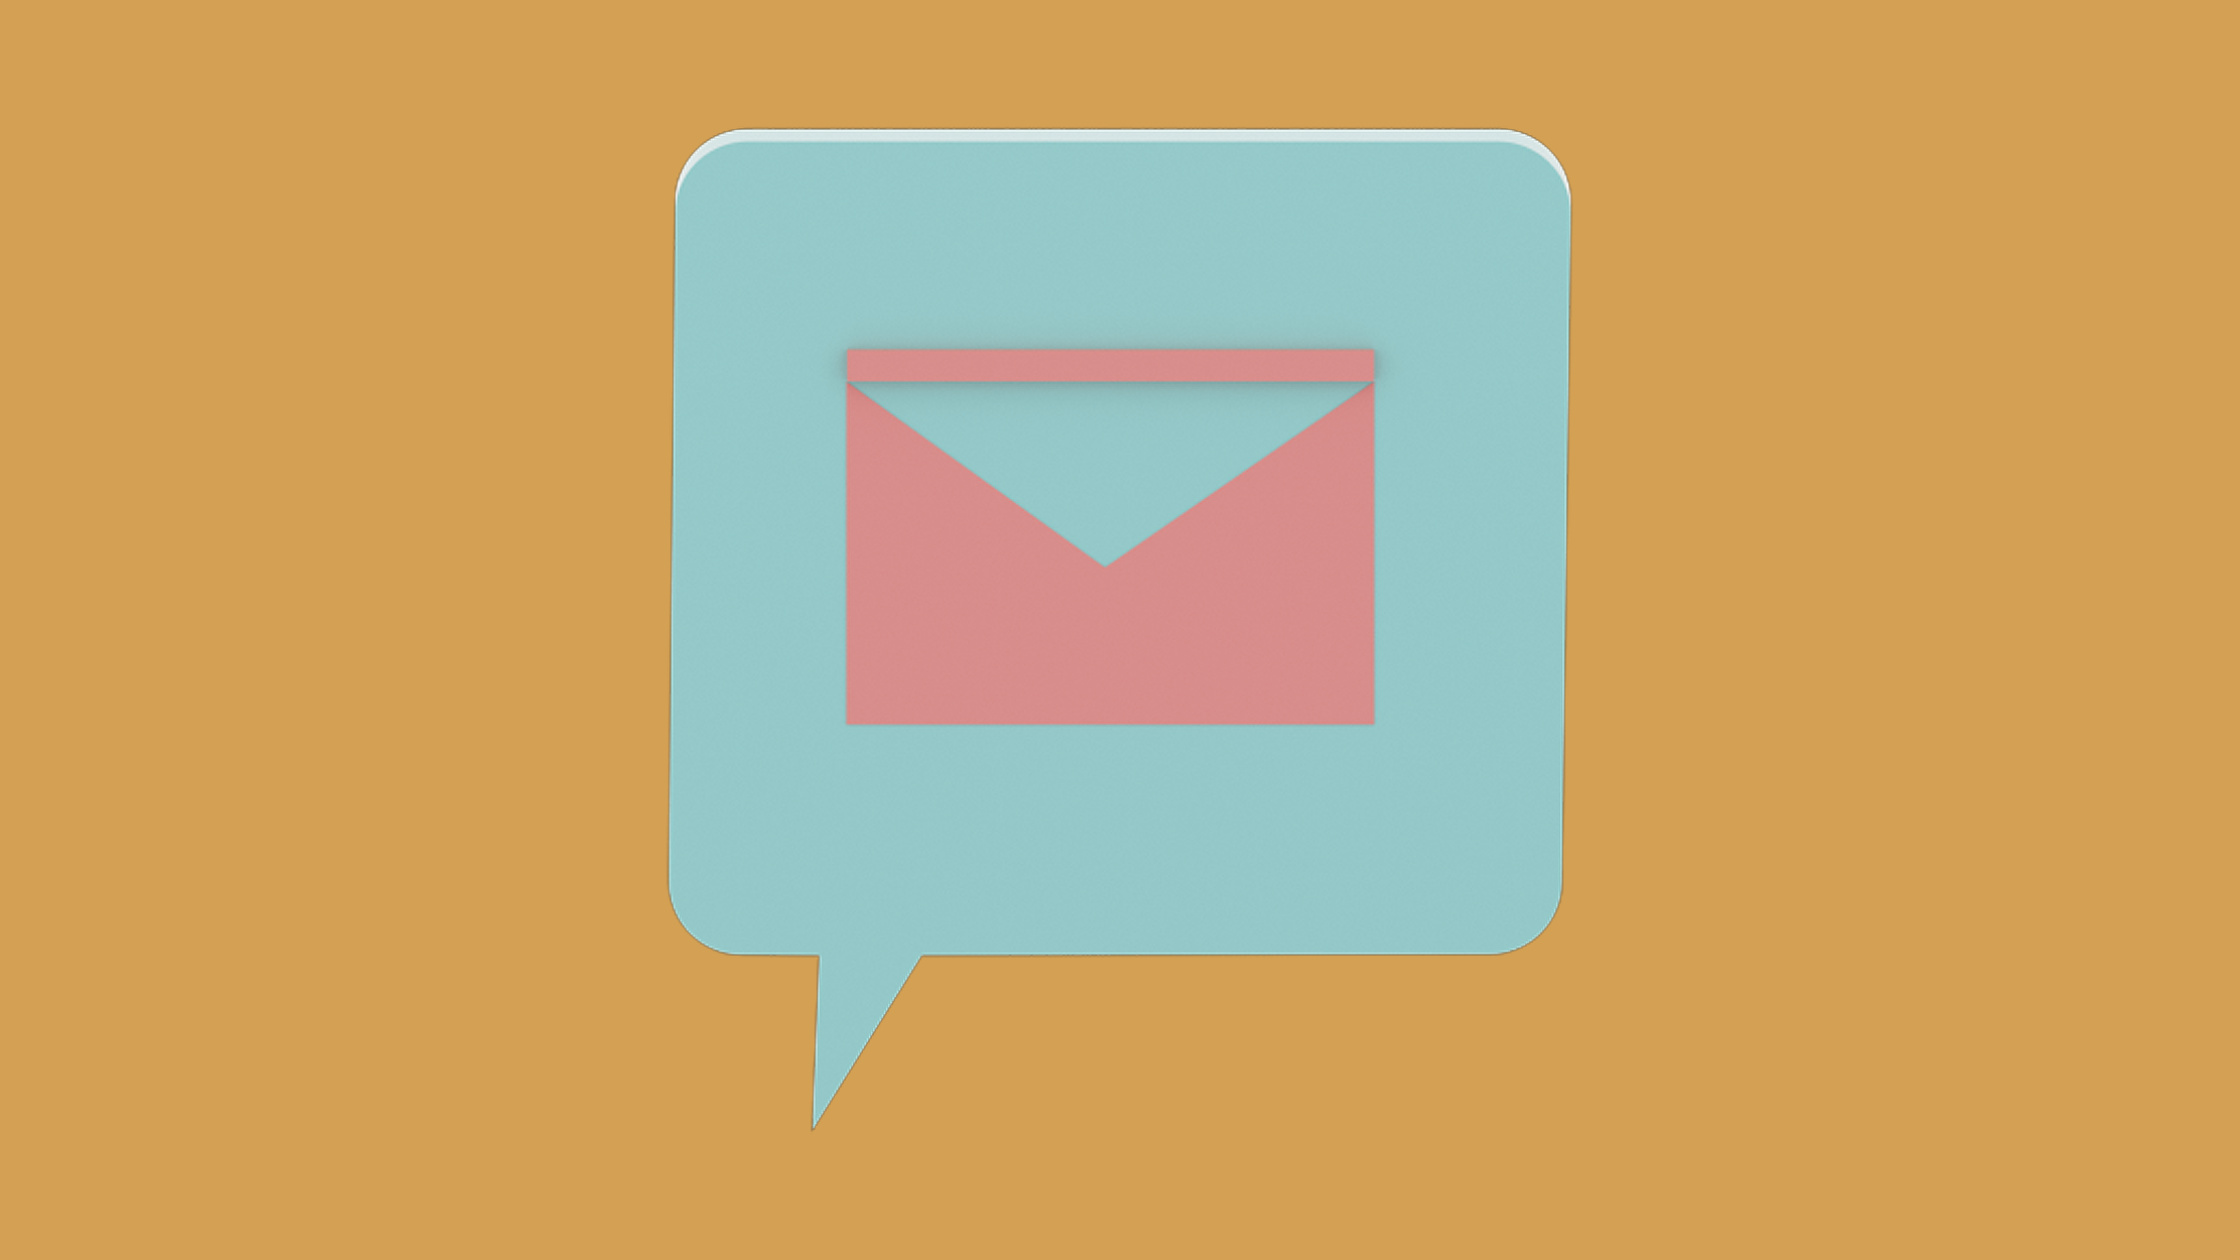 Email Marketing Tips For Small Business Owners